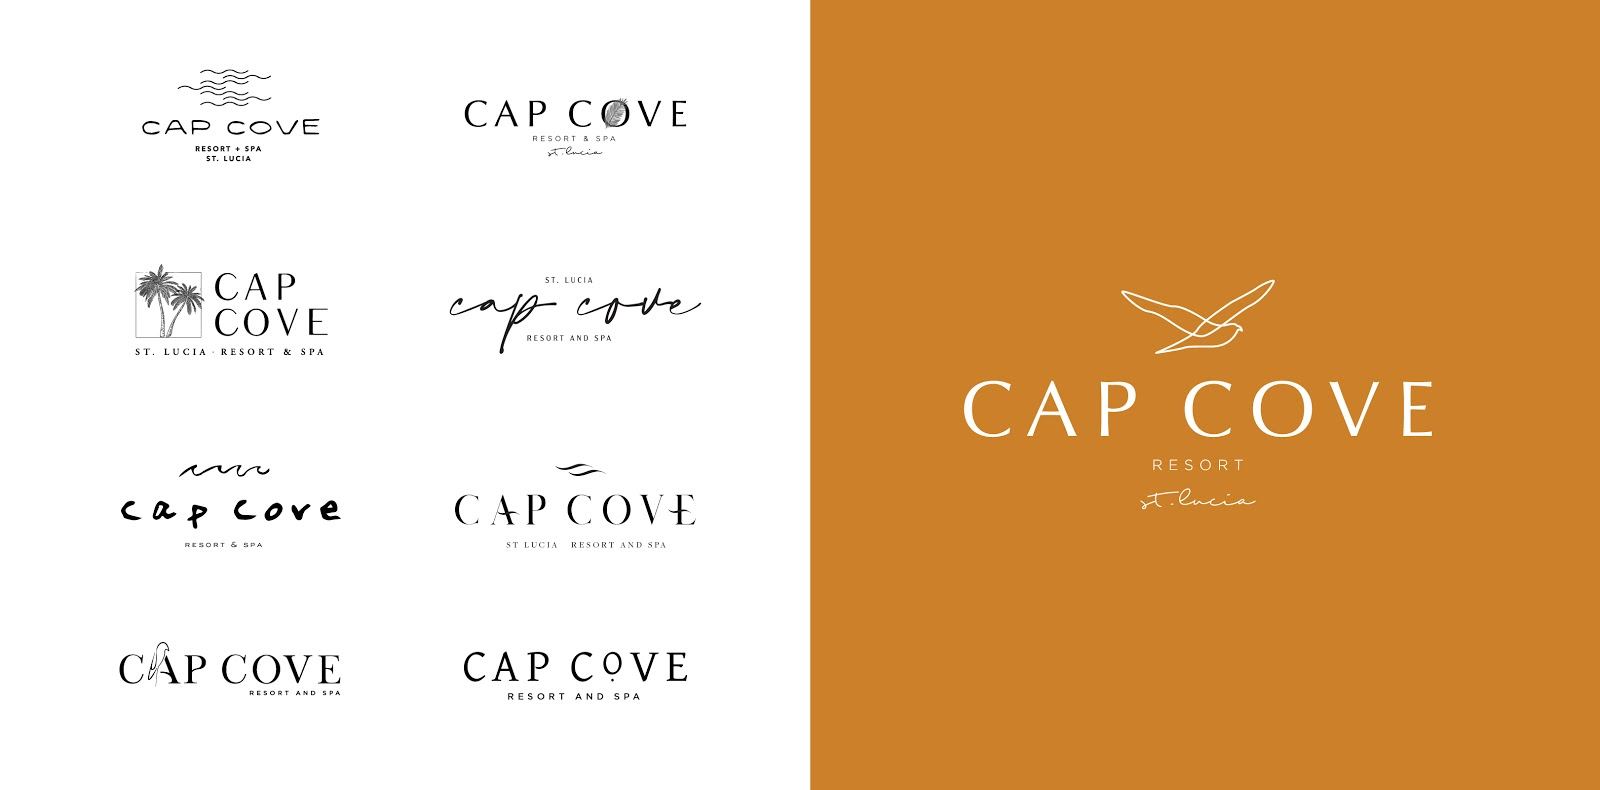 Cap Cove - Brand Collective 3